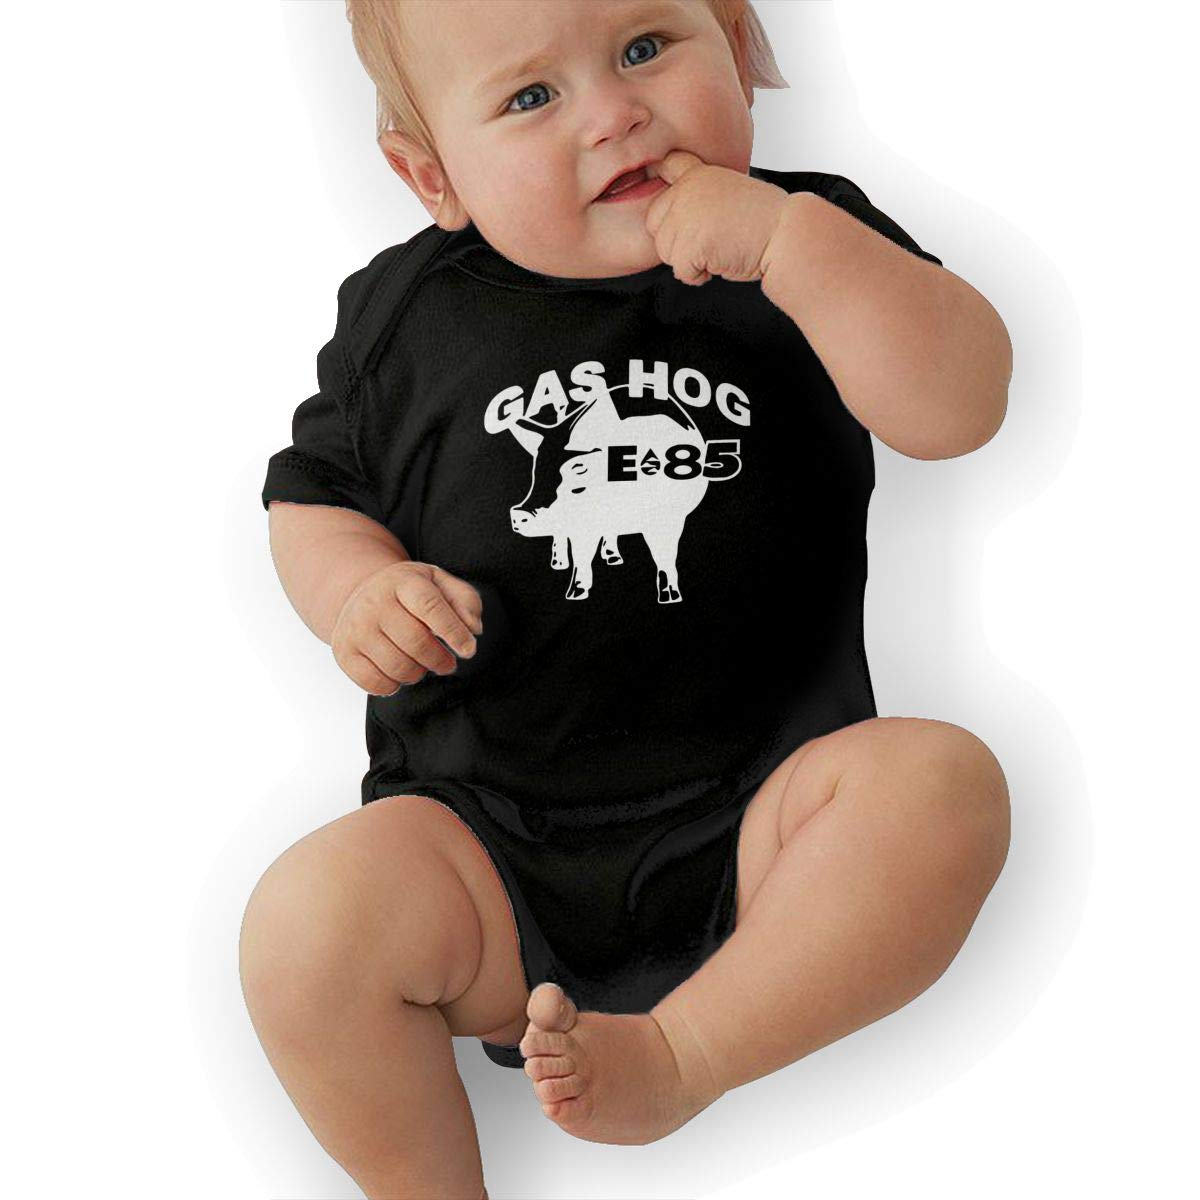 Bodysuits Clothes Onesies Jumpsuits Outfits Black Gas Hog E 85 Baby Pajamas